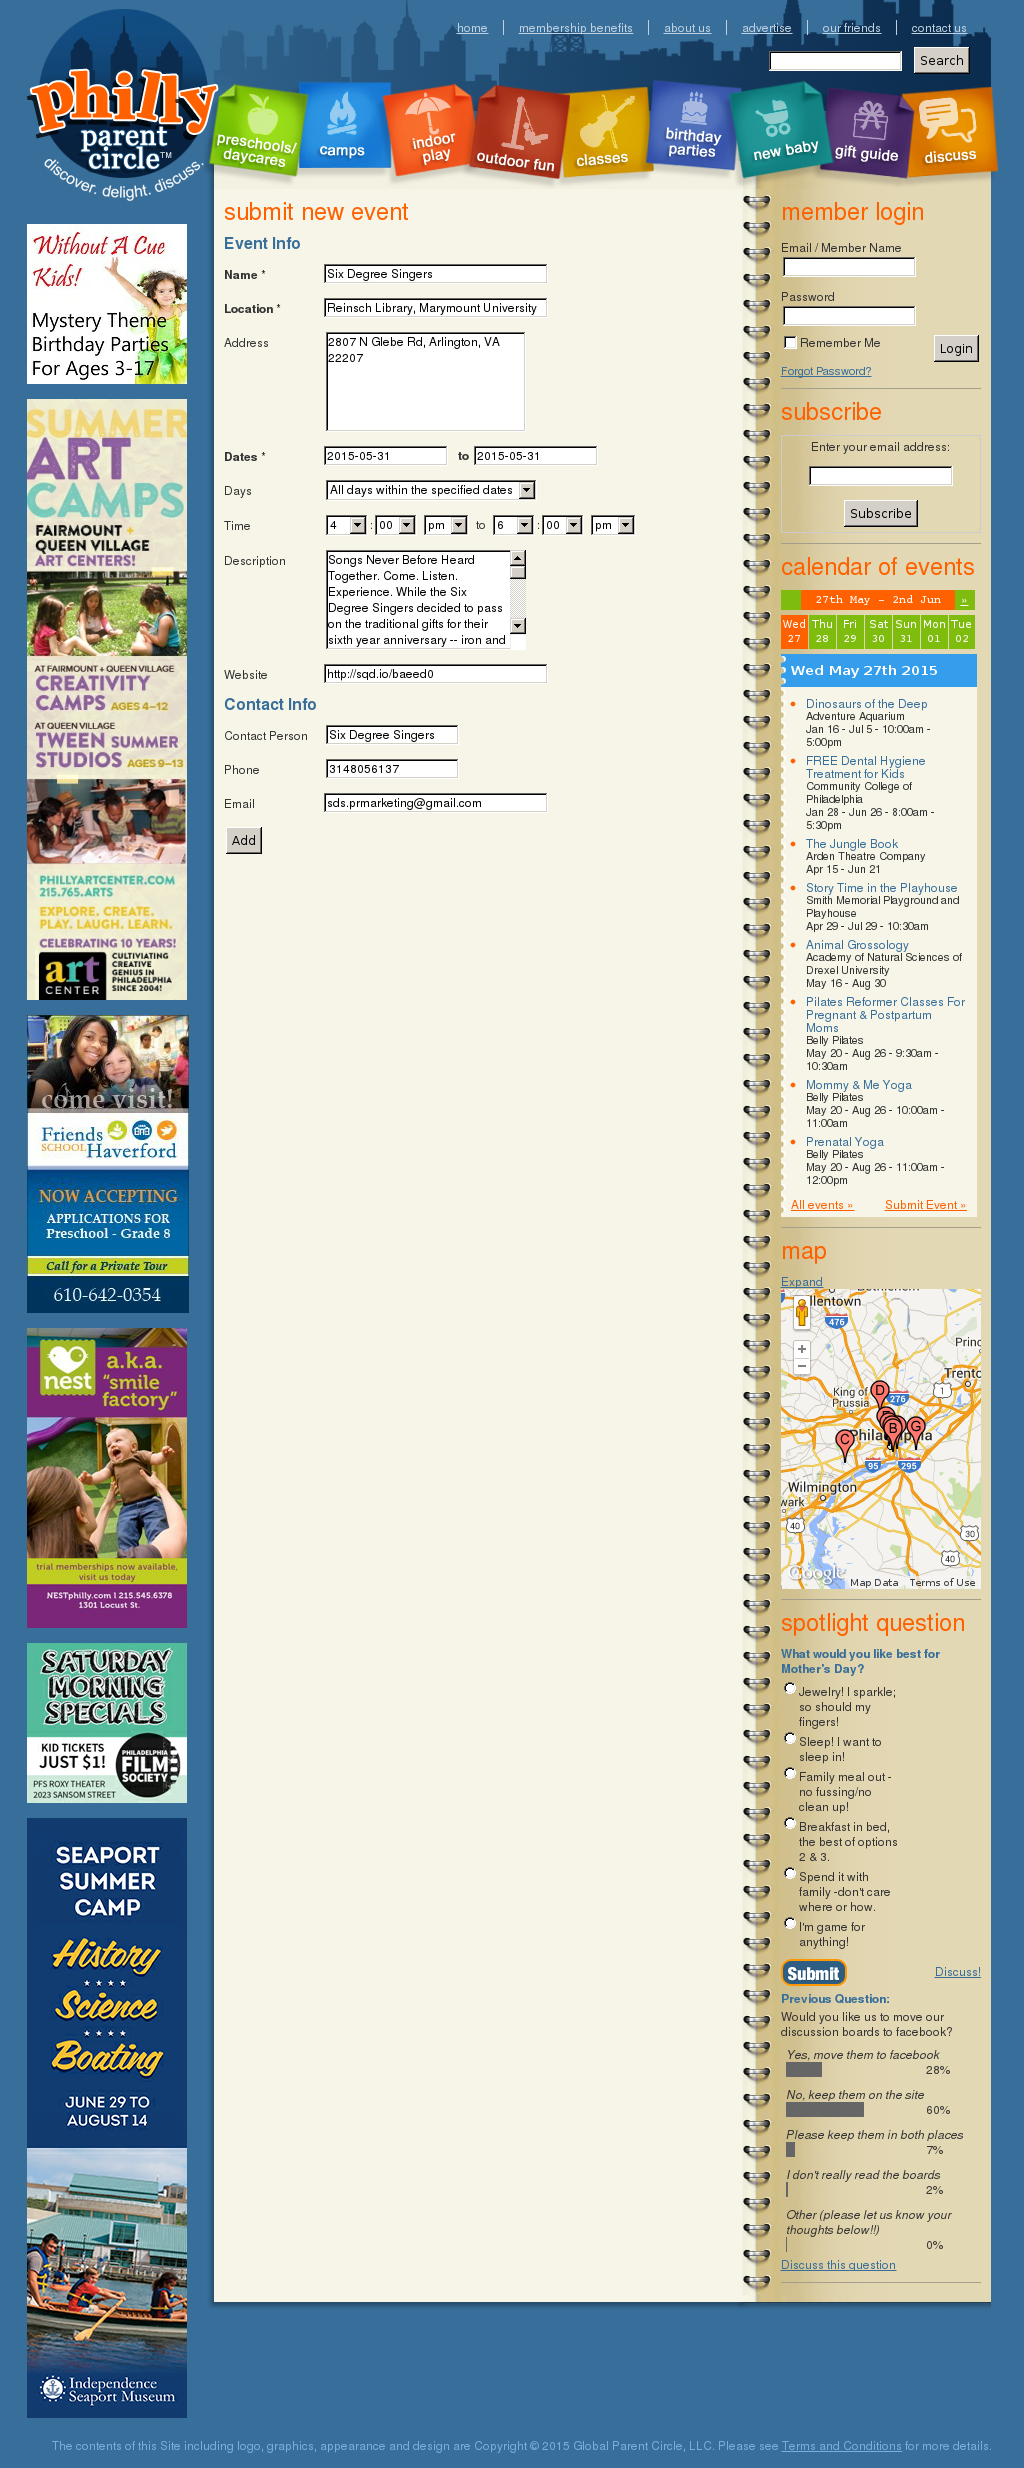 Screenshot from Philly Parent Circle integration